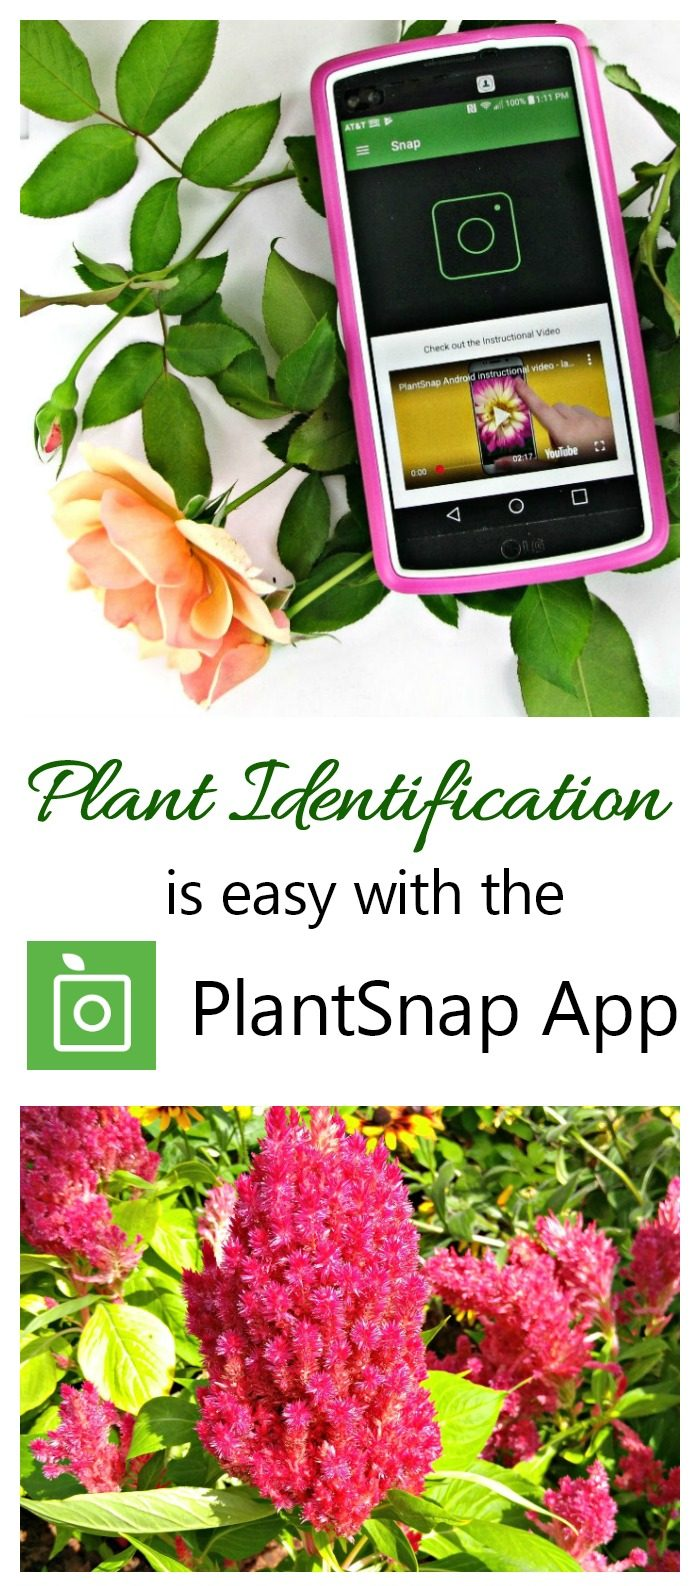 Pink flower with phone app and words Plant Identification is easy with the PlantSnap App.